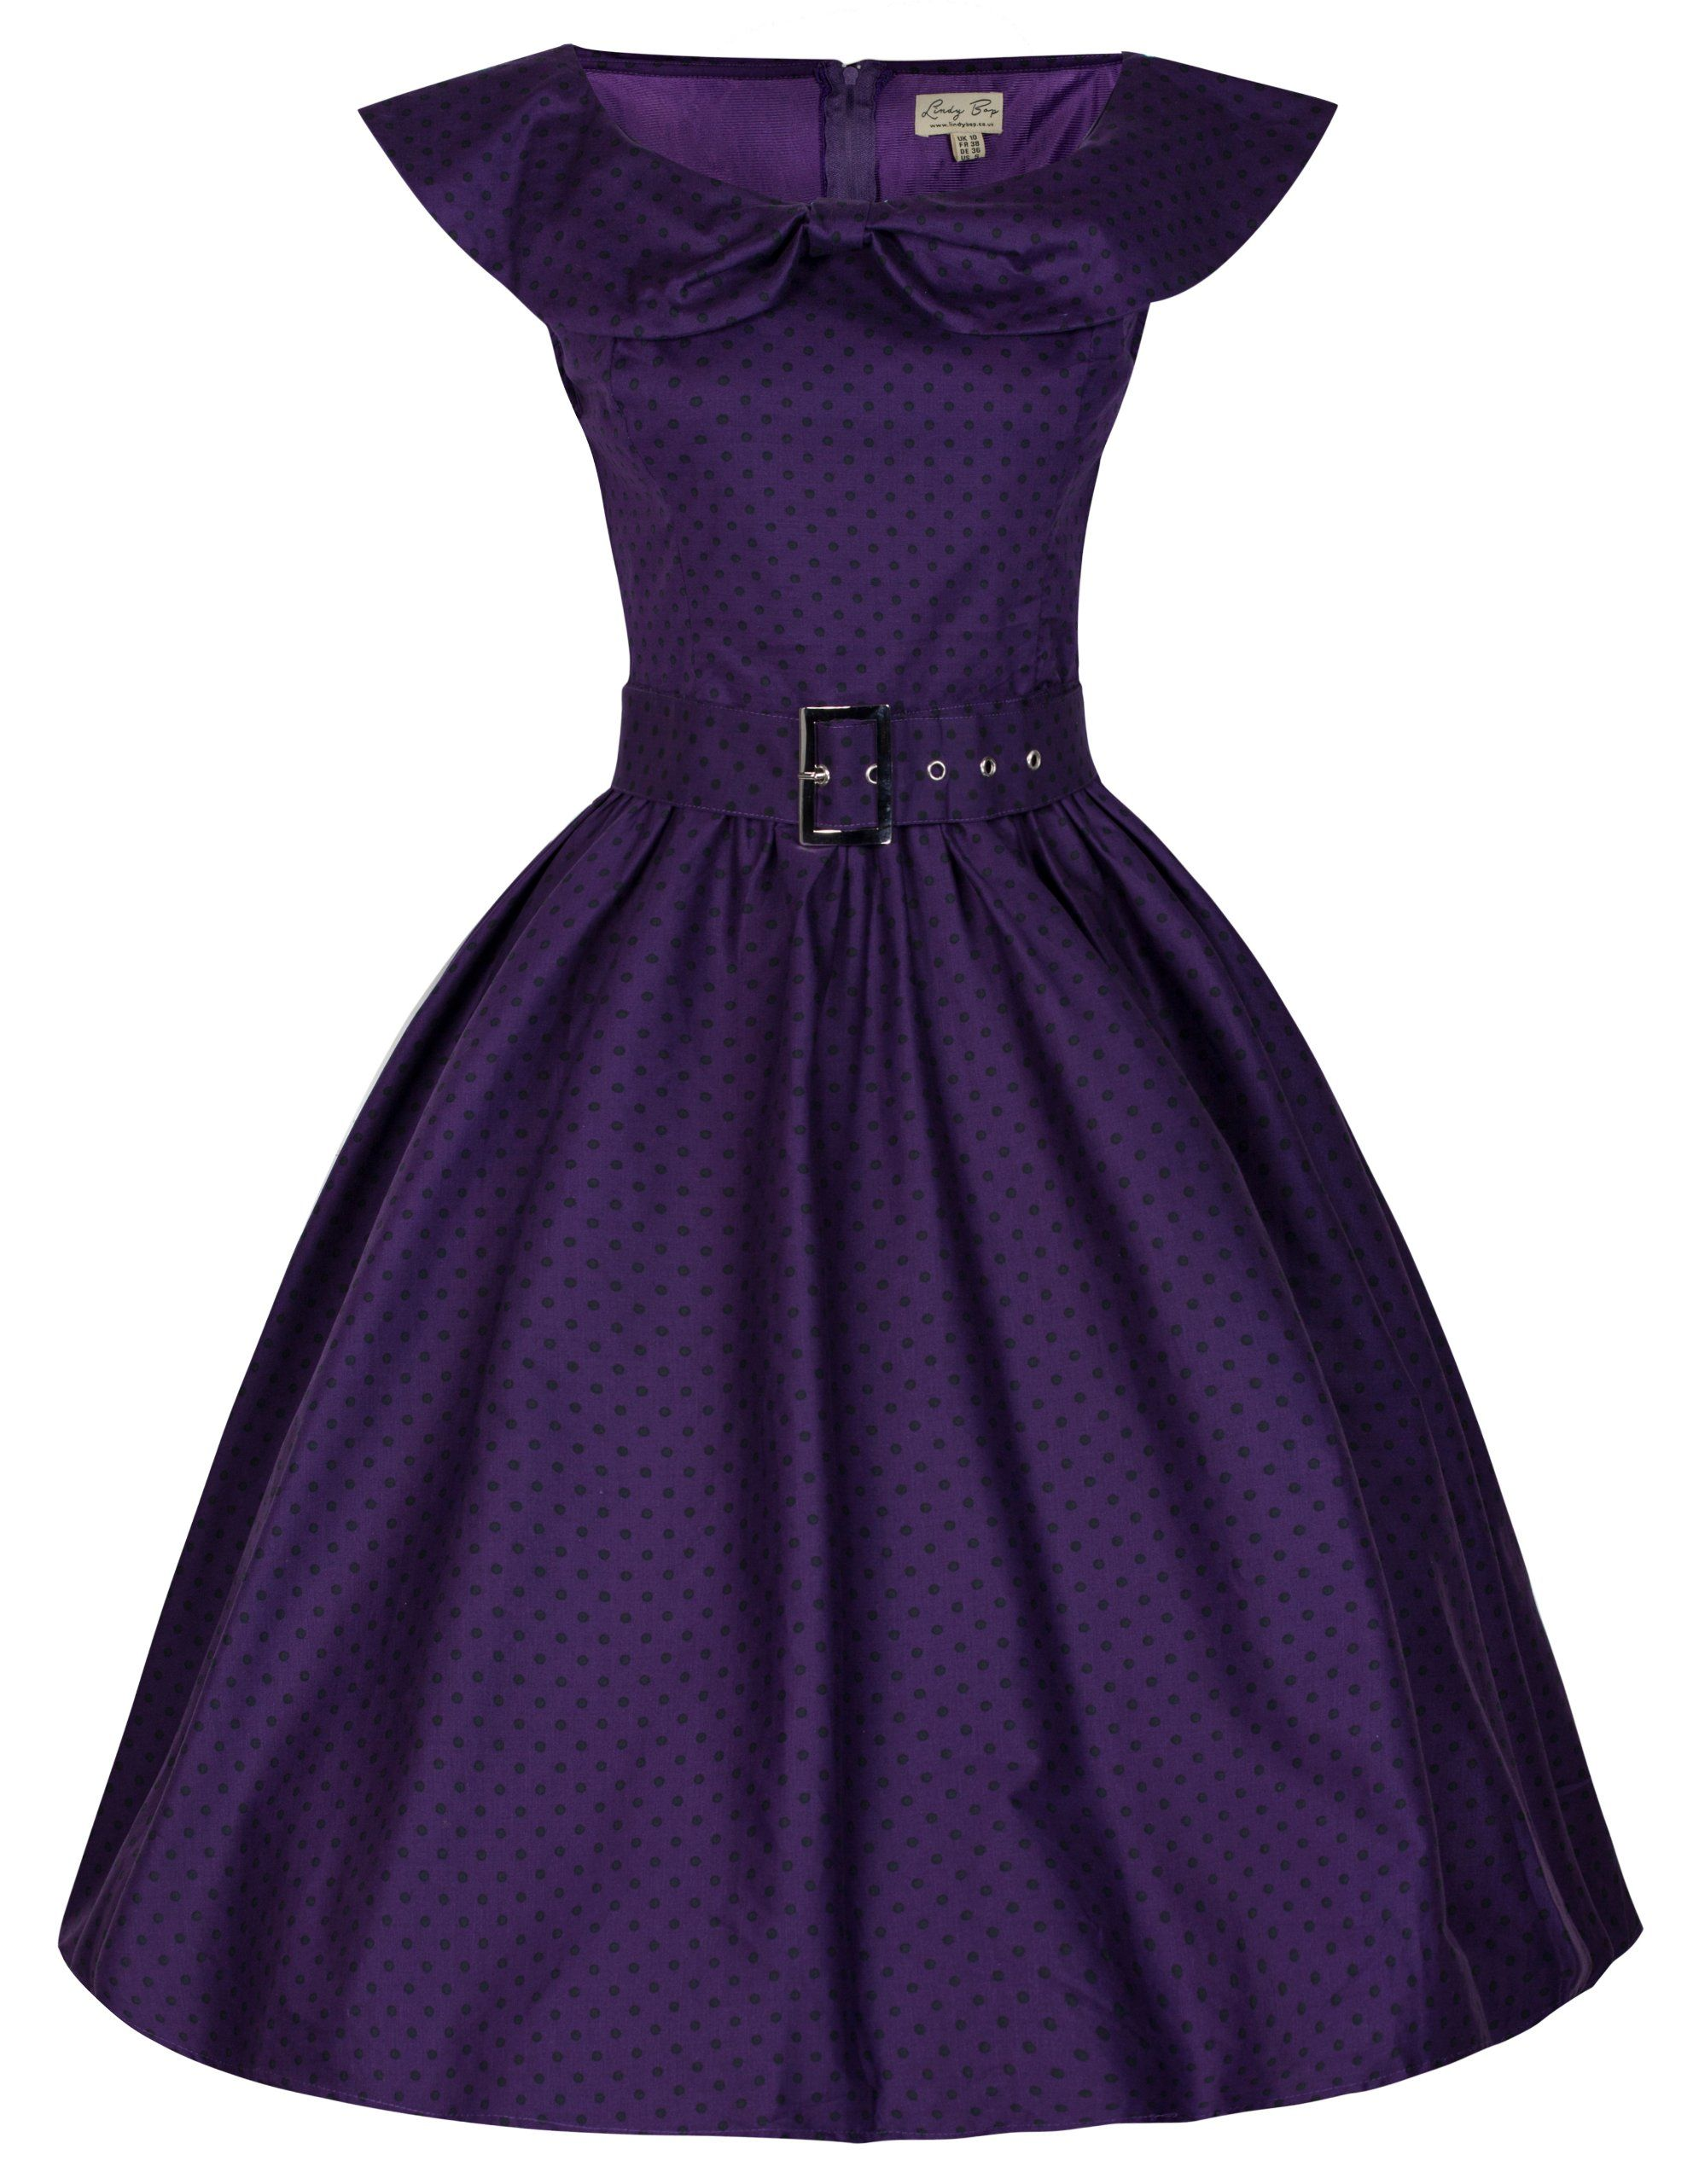 a7a83ebce4a8 Lindy Bop 'Hetty' Polka Dot Bow Shawl Collar Vintage 1950's Rockabilly  Swing Dress at Amazon Women's Clothing store: